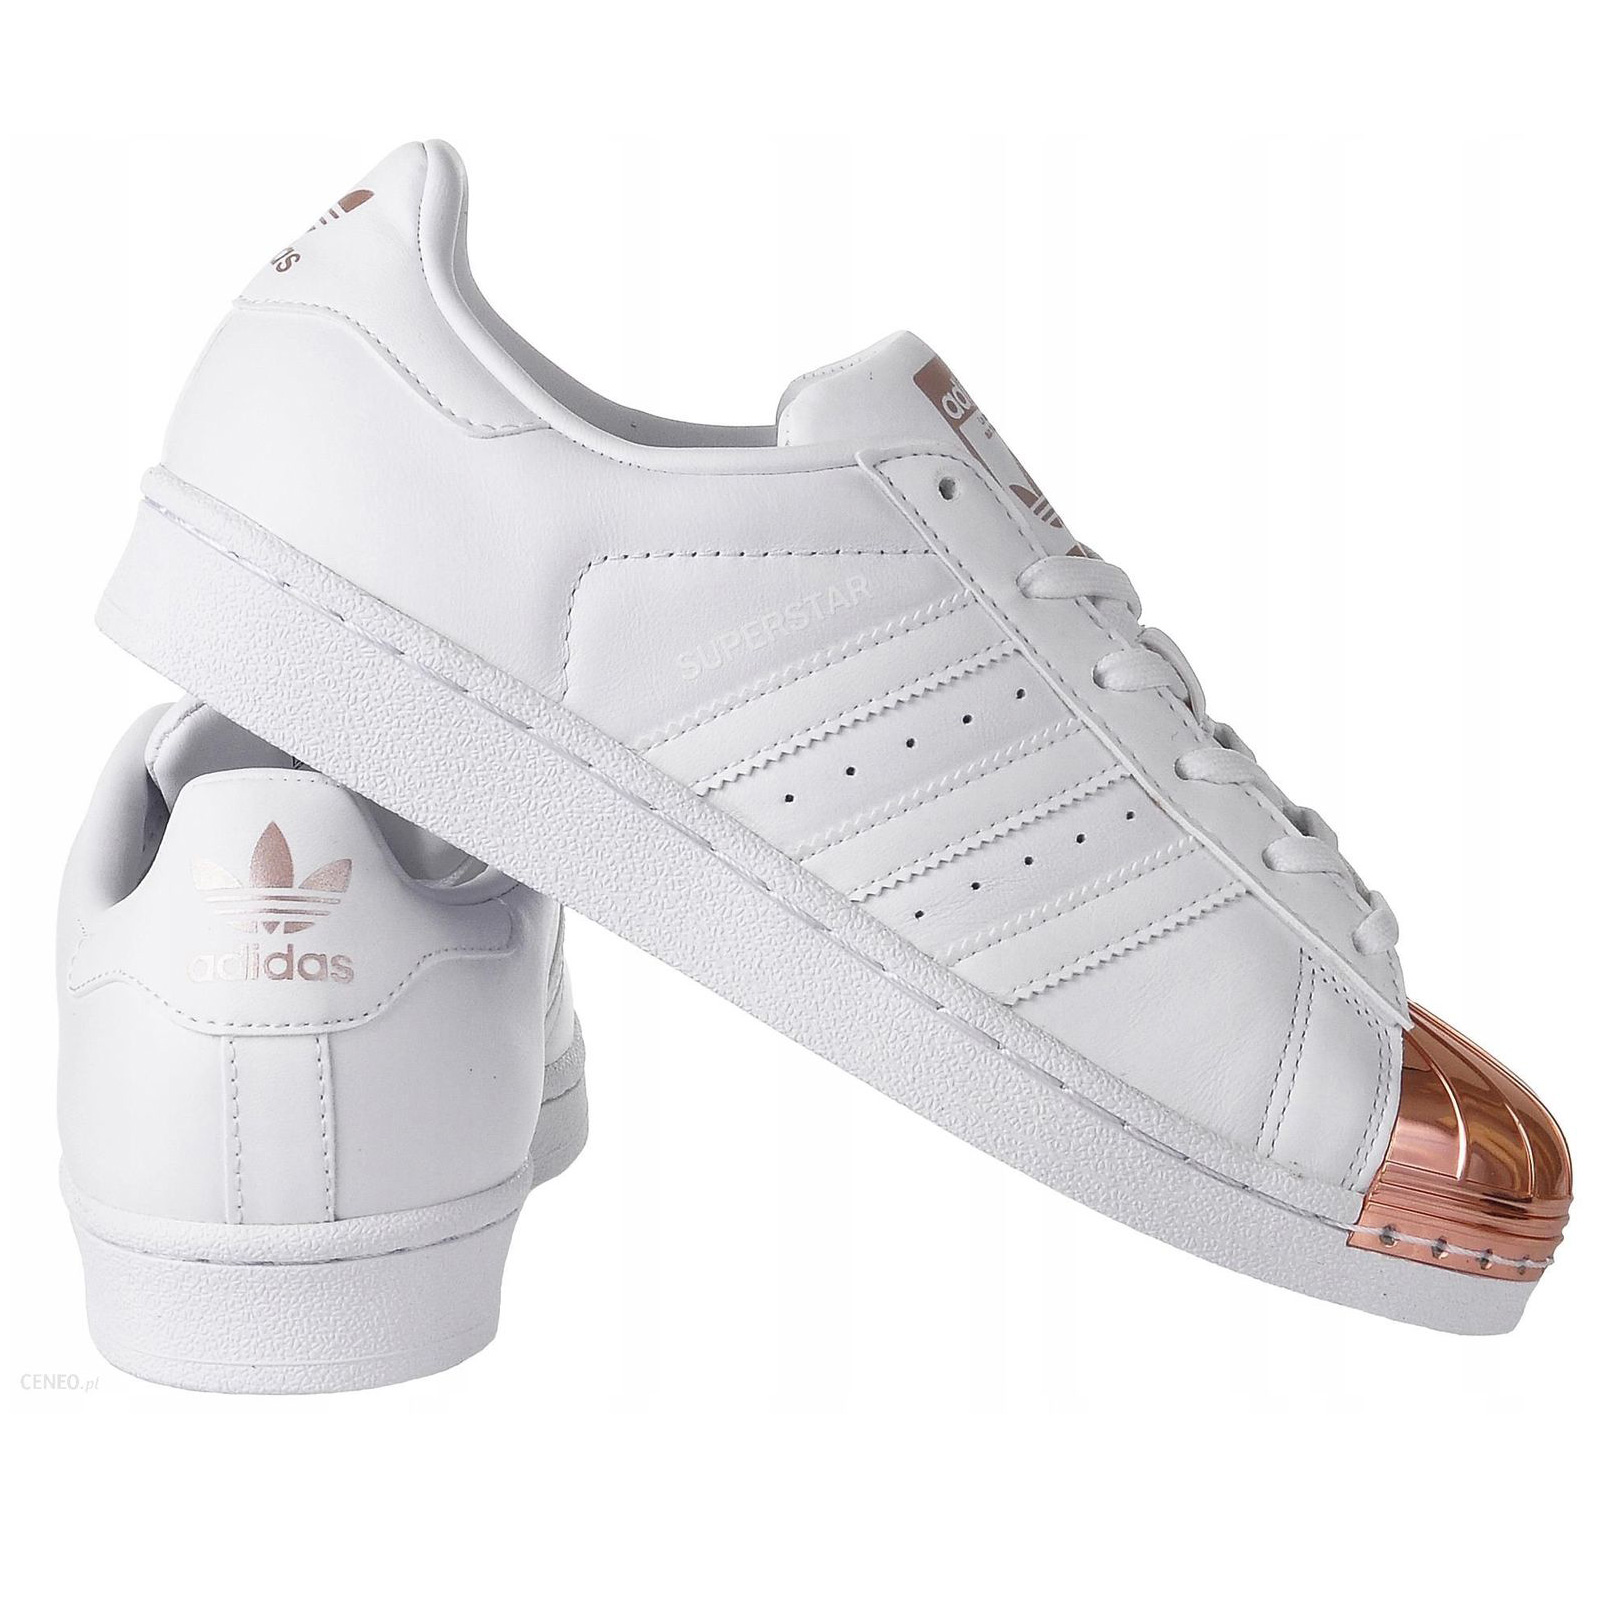 biggest discount stable quality official photos ADIDAS ORIGINALS SUPERSTAR METAL TOE BY2882 DAMEN SNEAKER LEDER WEISS GOLD